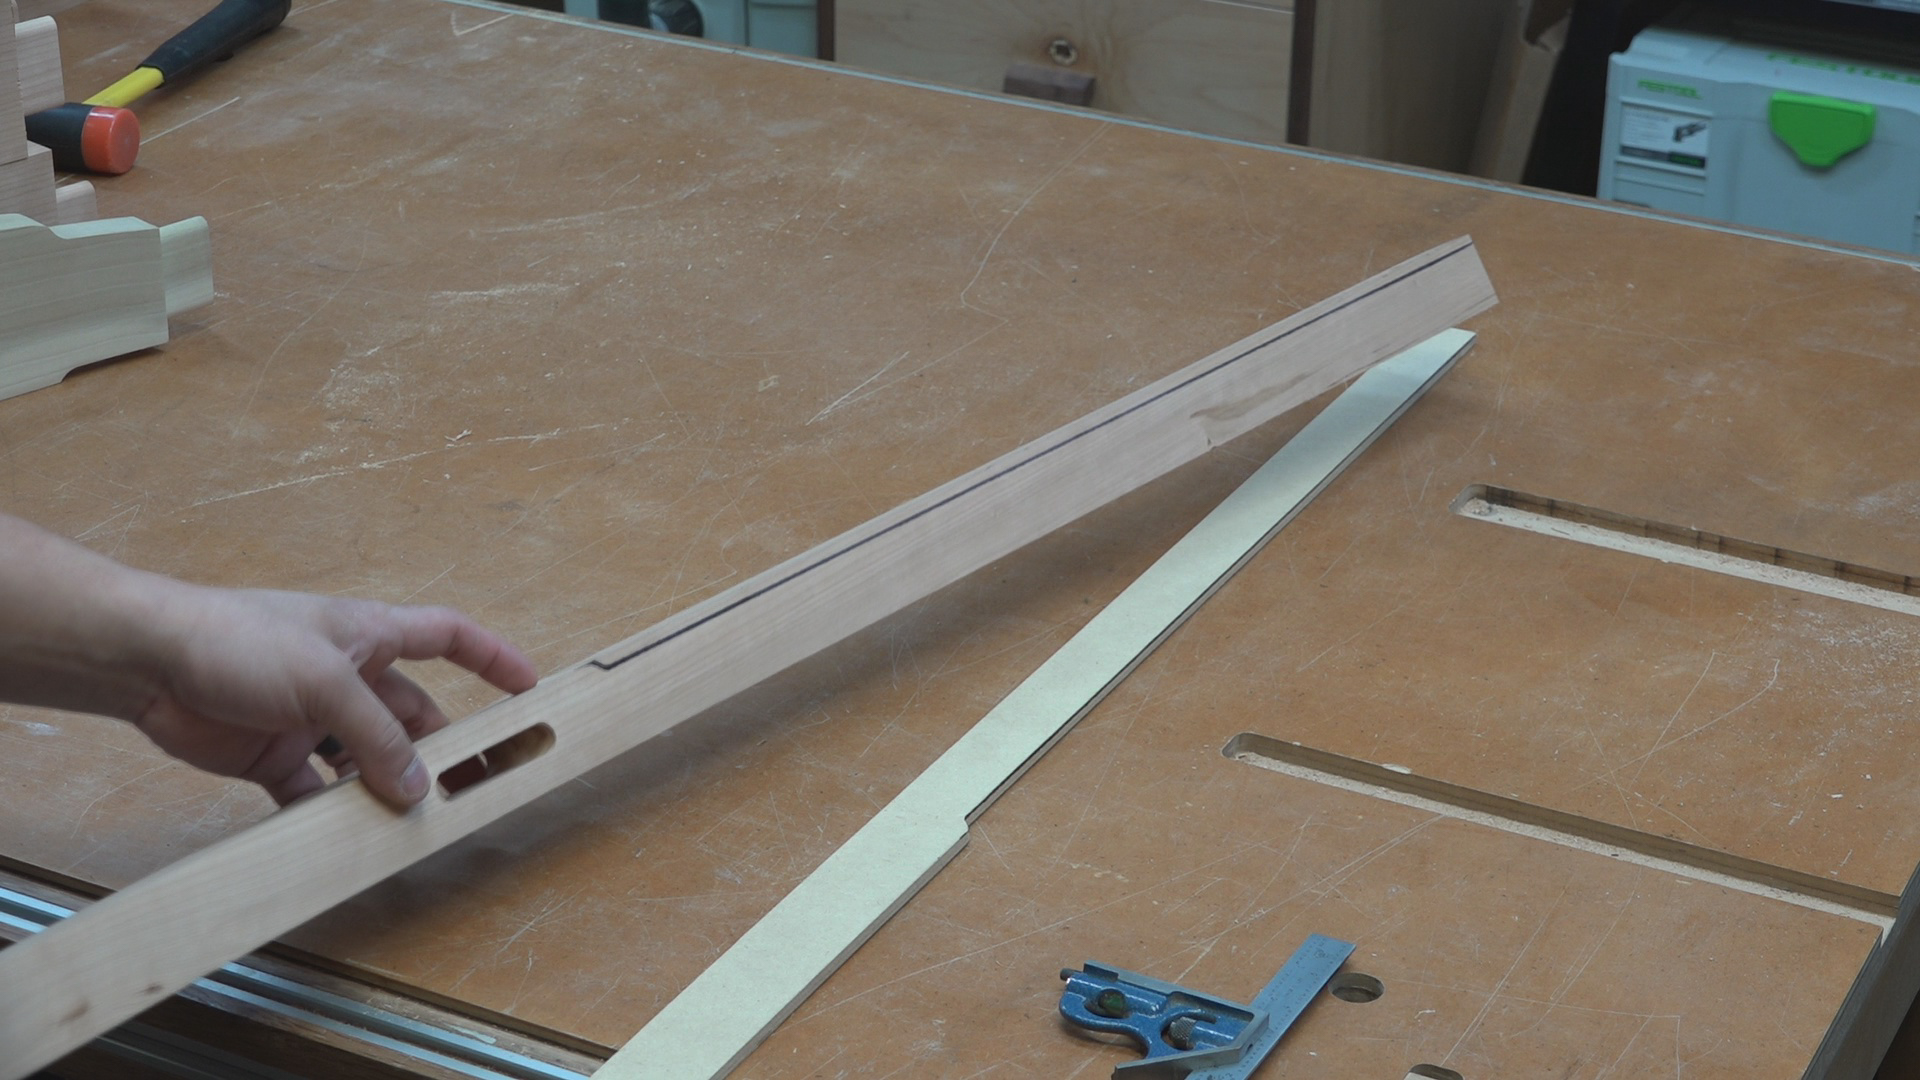 """I first traced the outline of the cloud lift using a 1/4"""" MDF template. The 1/4"""" MDF is flexible making it easier to contour the template to the arc of the rear leg as I trace the outline."""